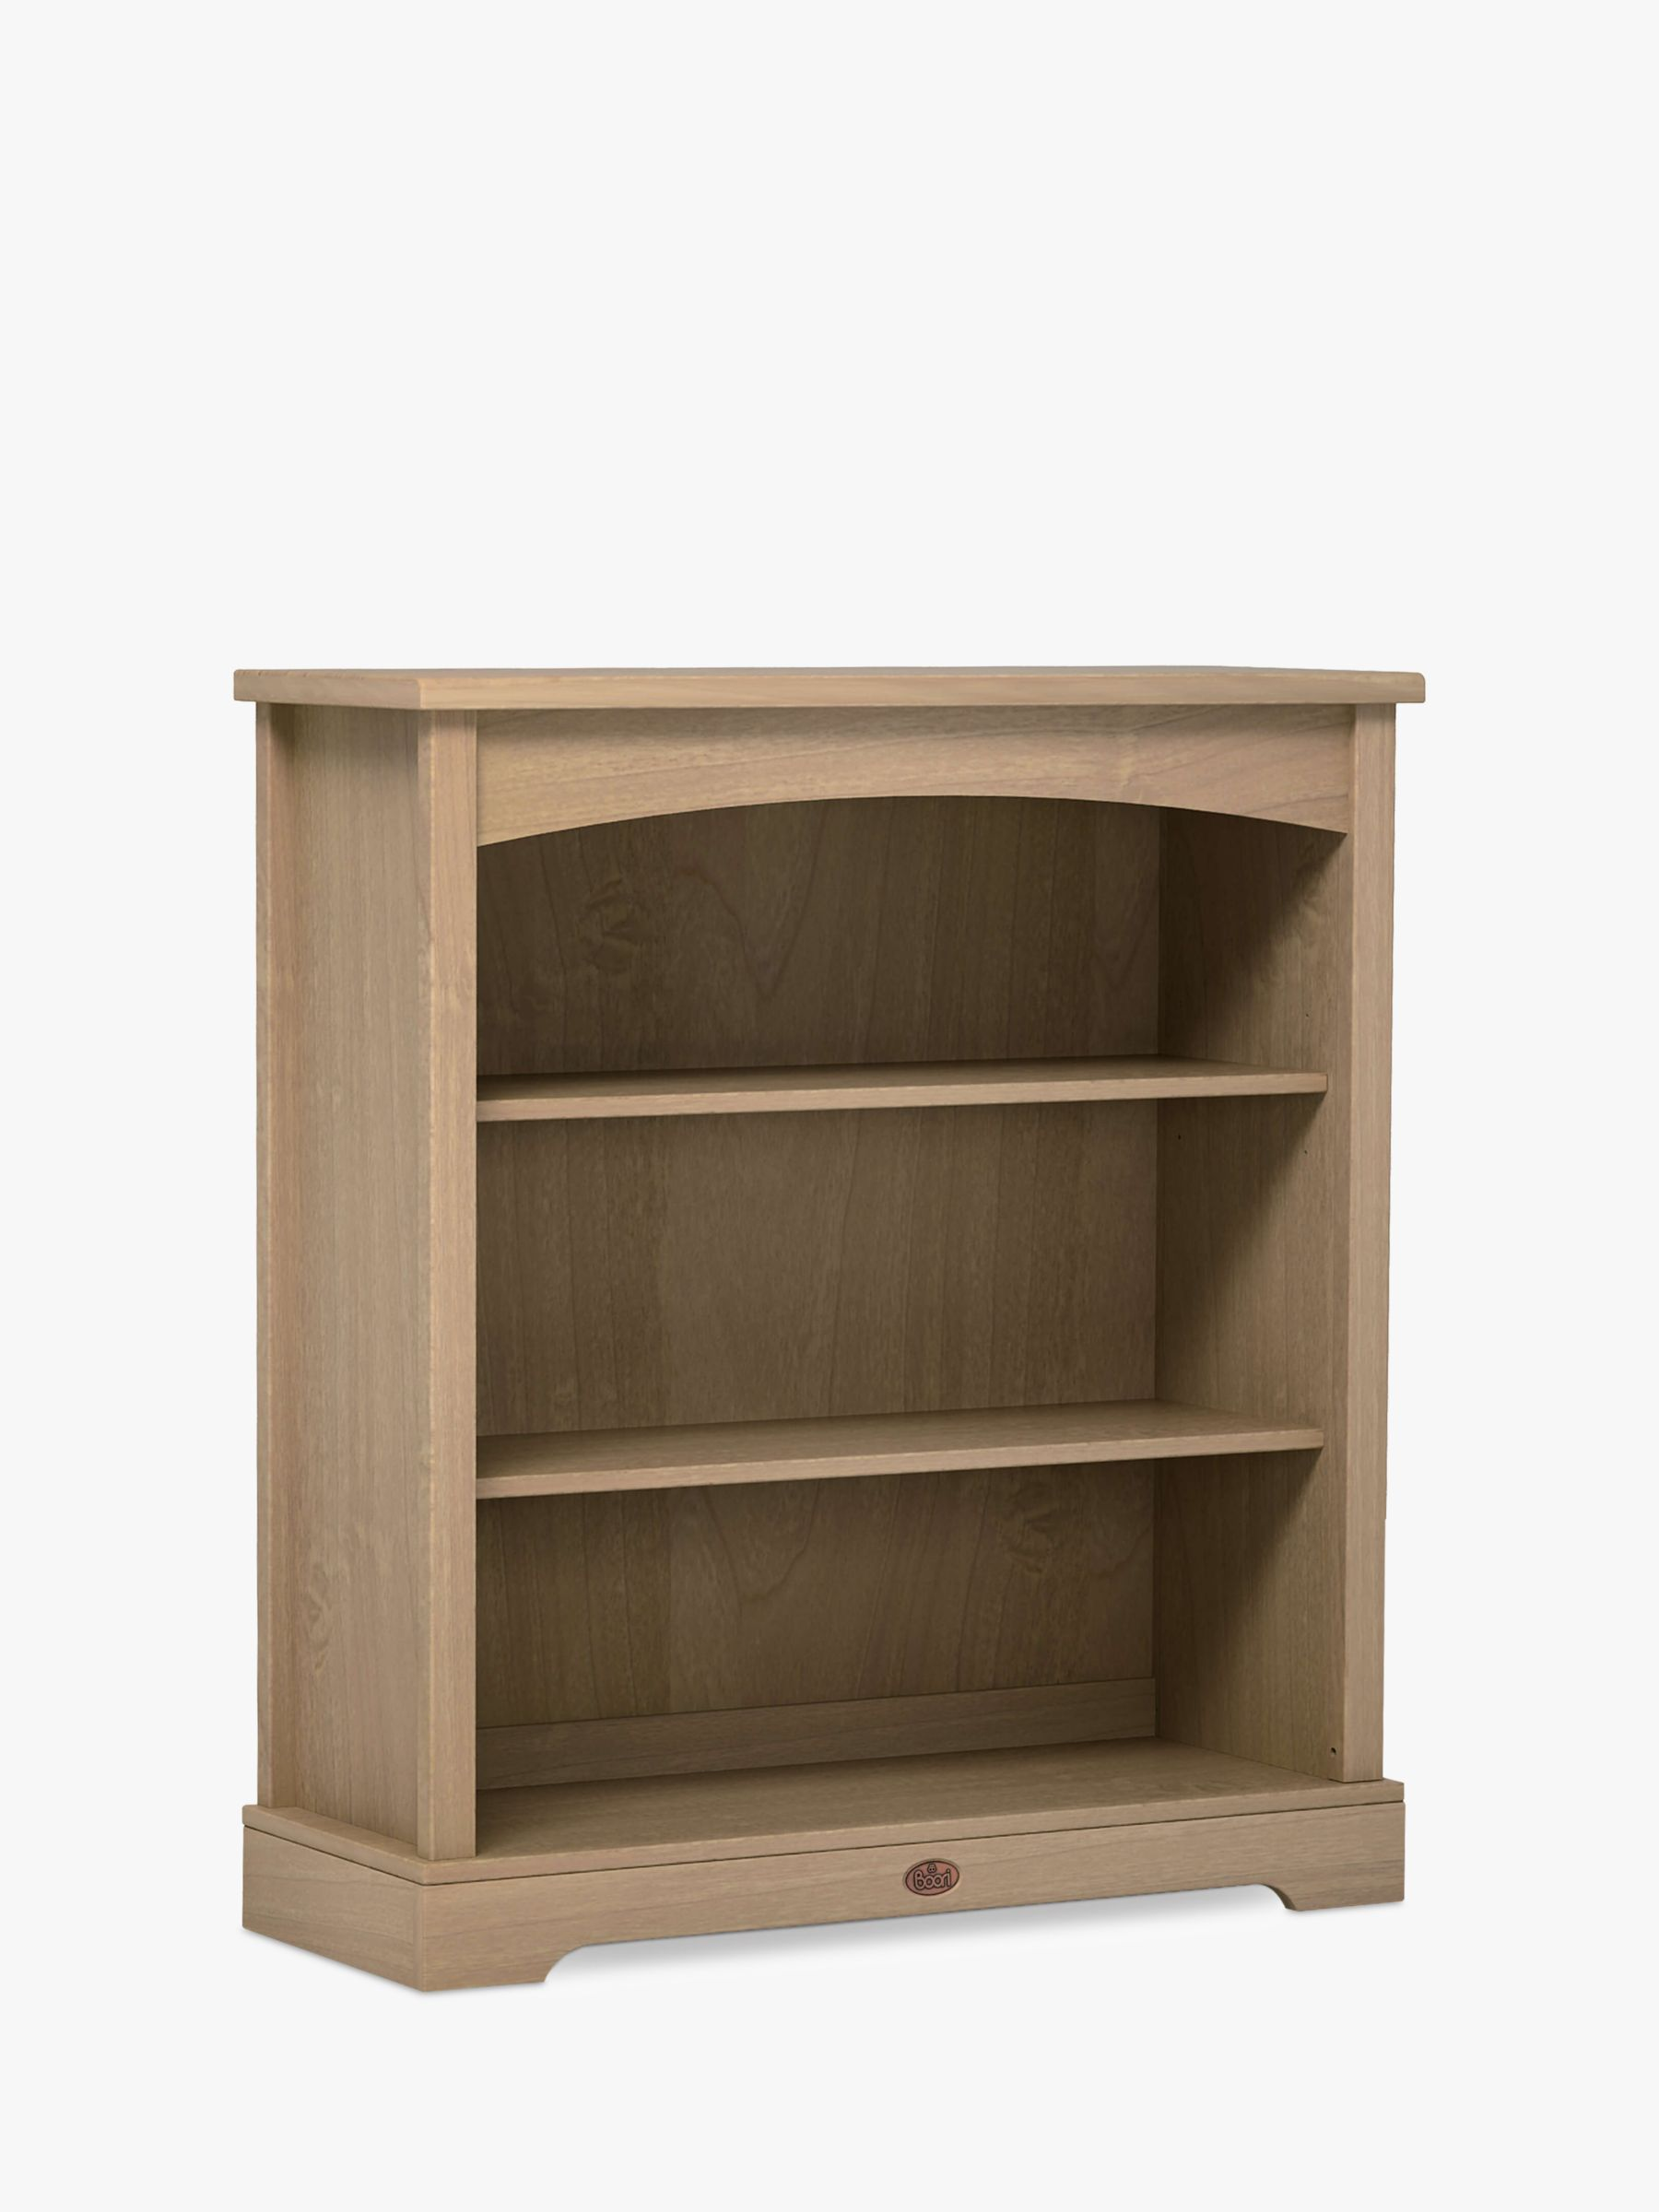 Boori Boori Bookcase Hutch, Almond